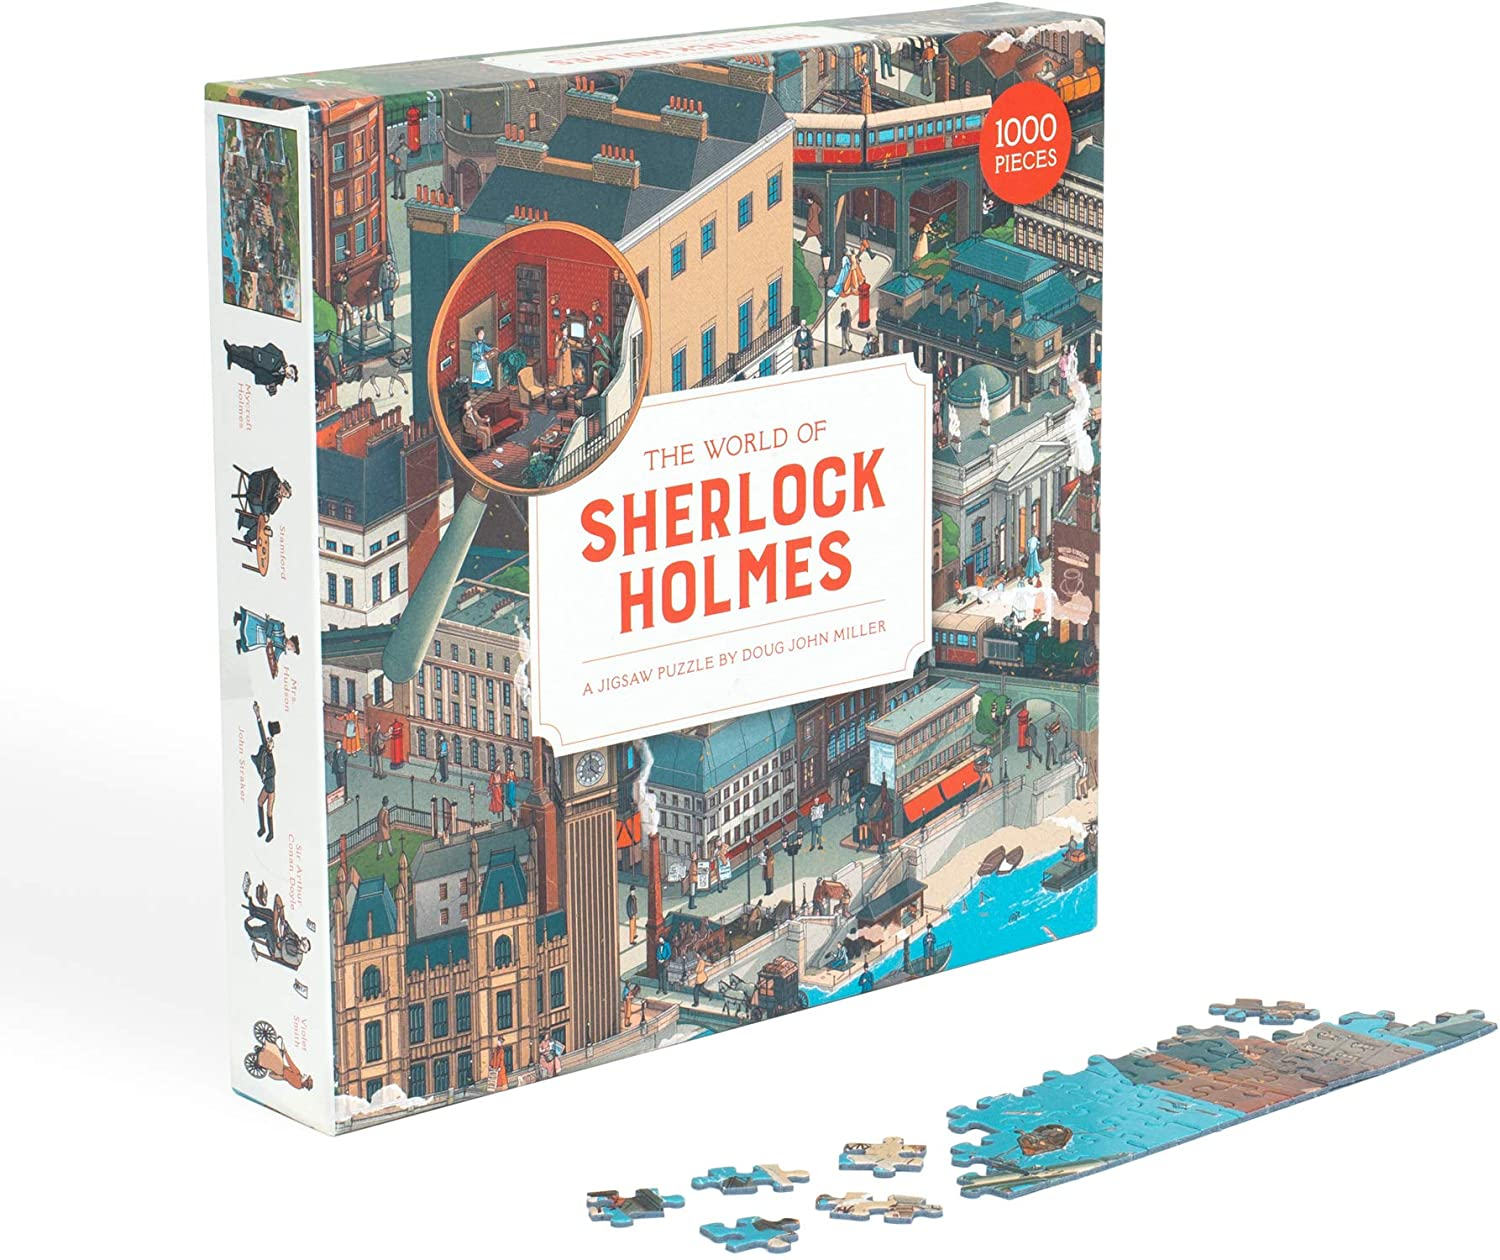 The World of Sherlock Holmes : A Jigsaw Puzzle